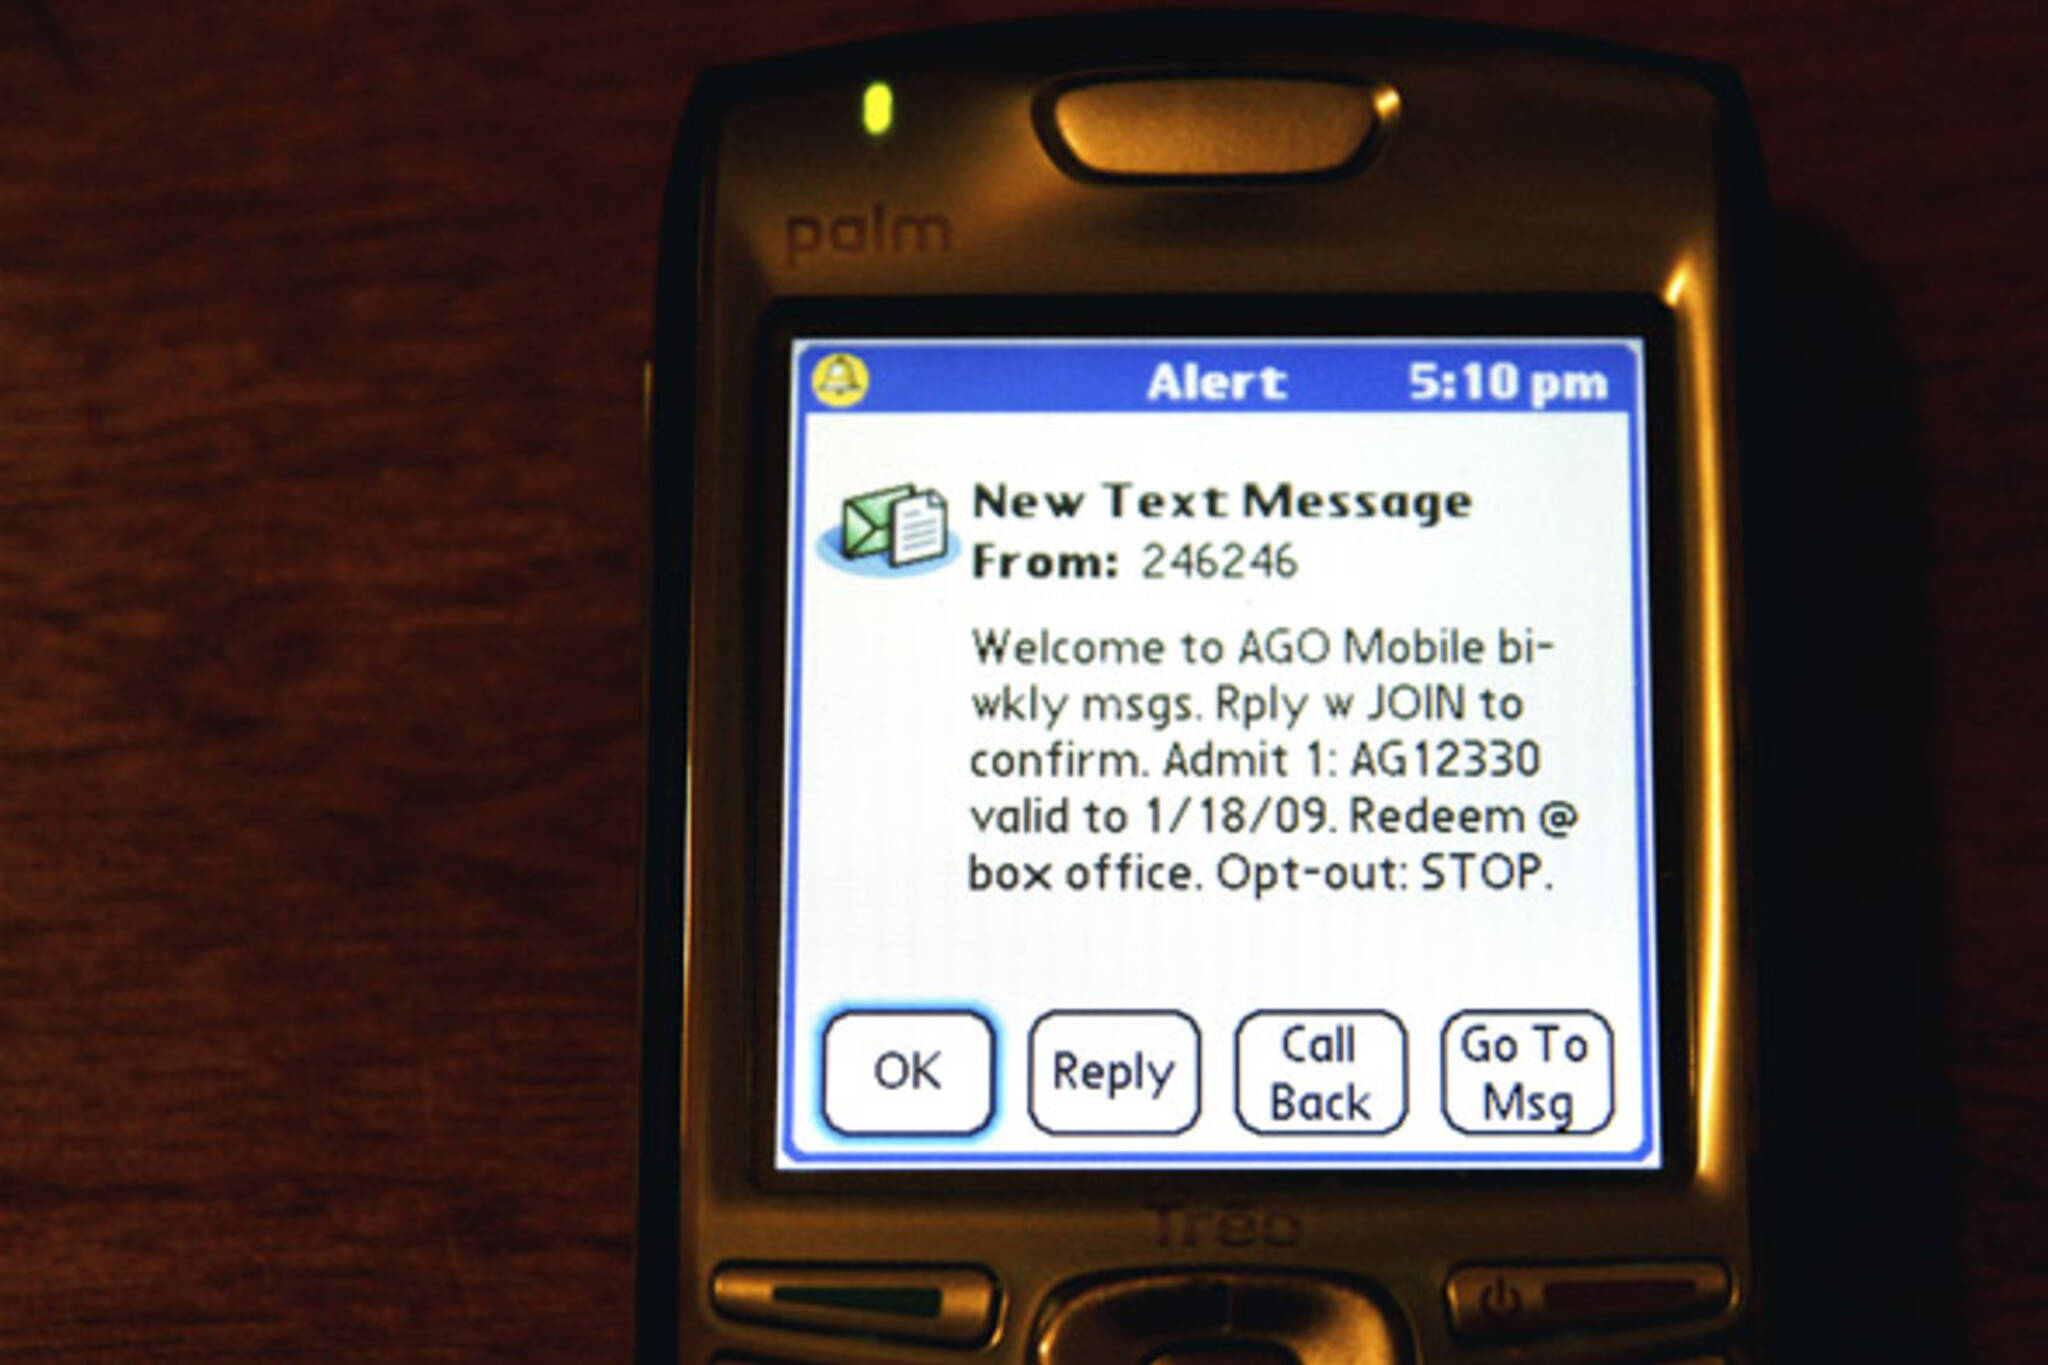 AGO offers free admission via text messaging